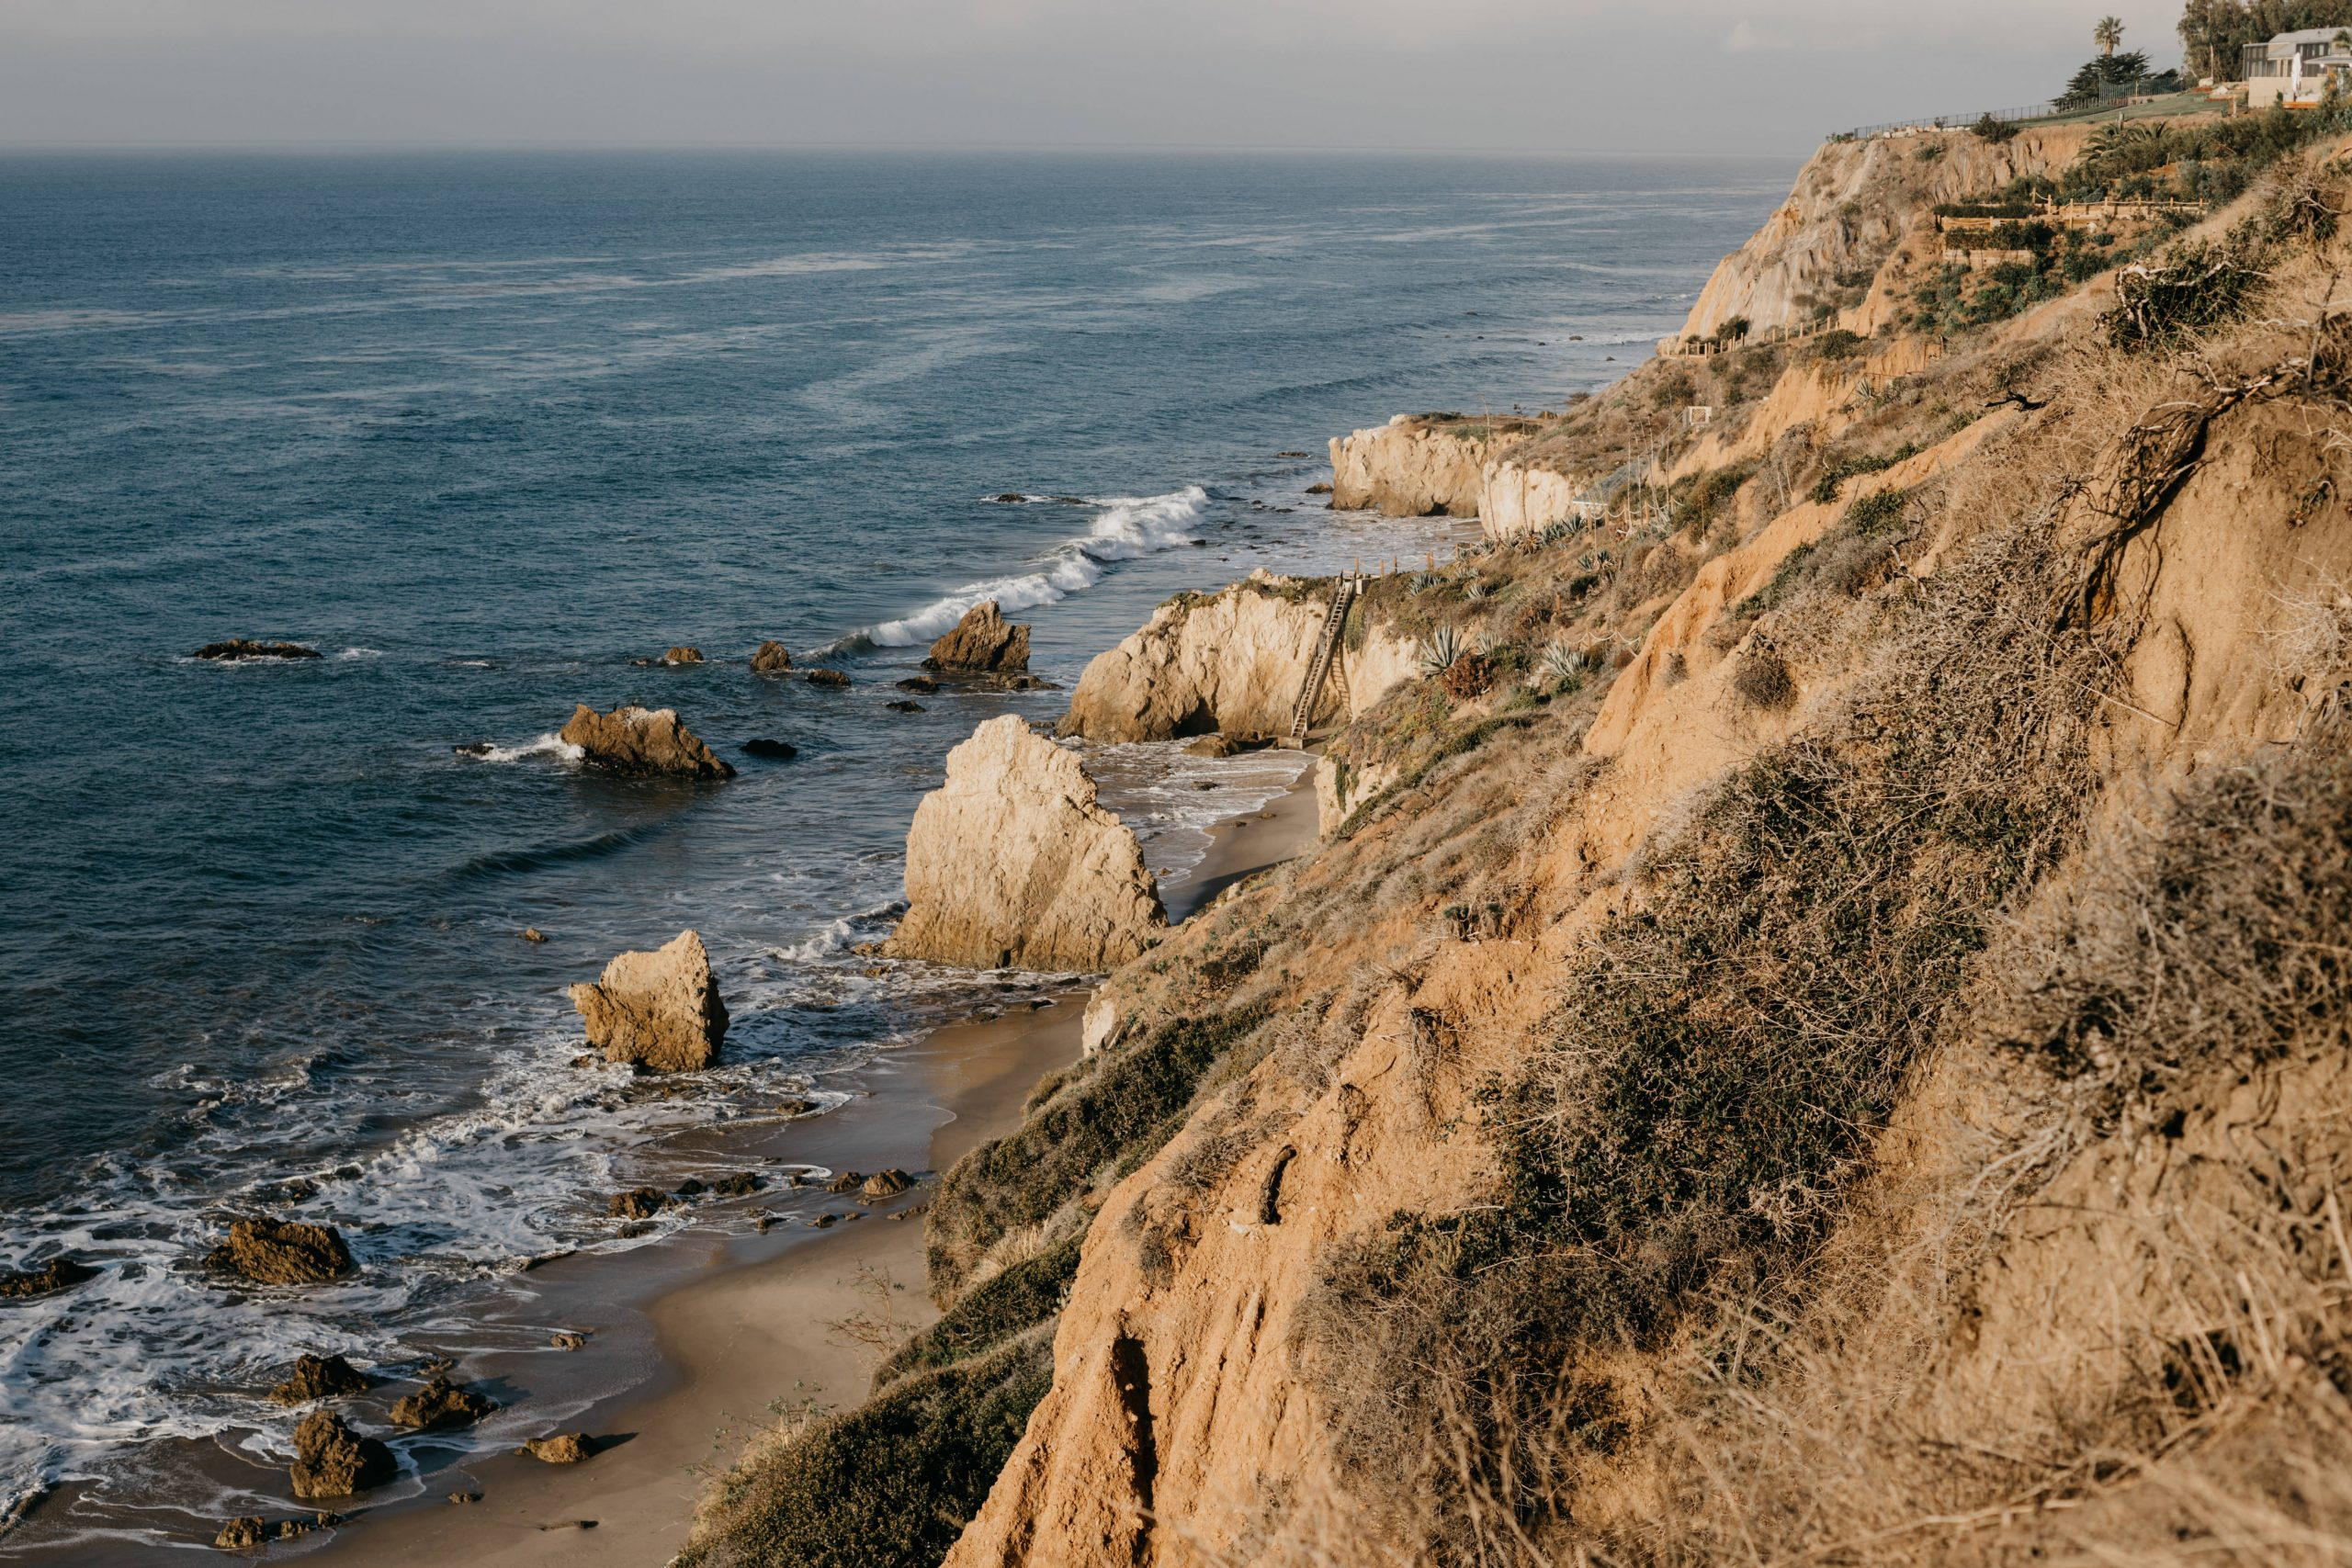 California Coast Desktop Wallpaper, image by Fatima Elreda Photo